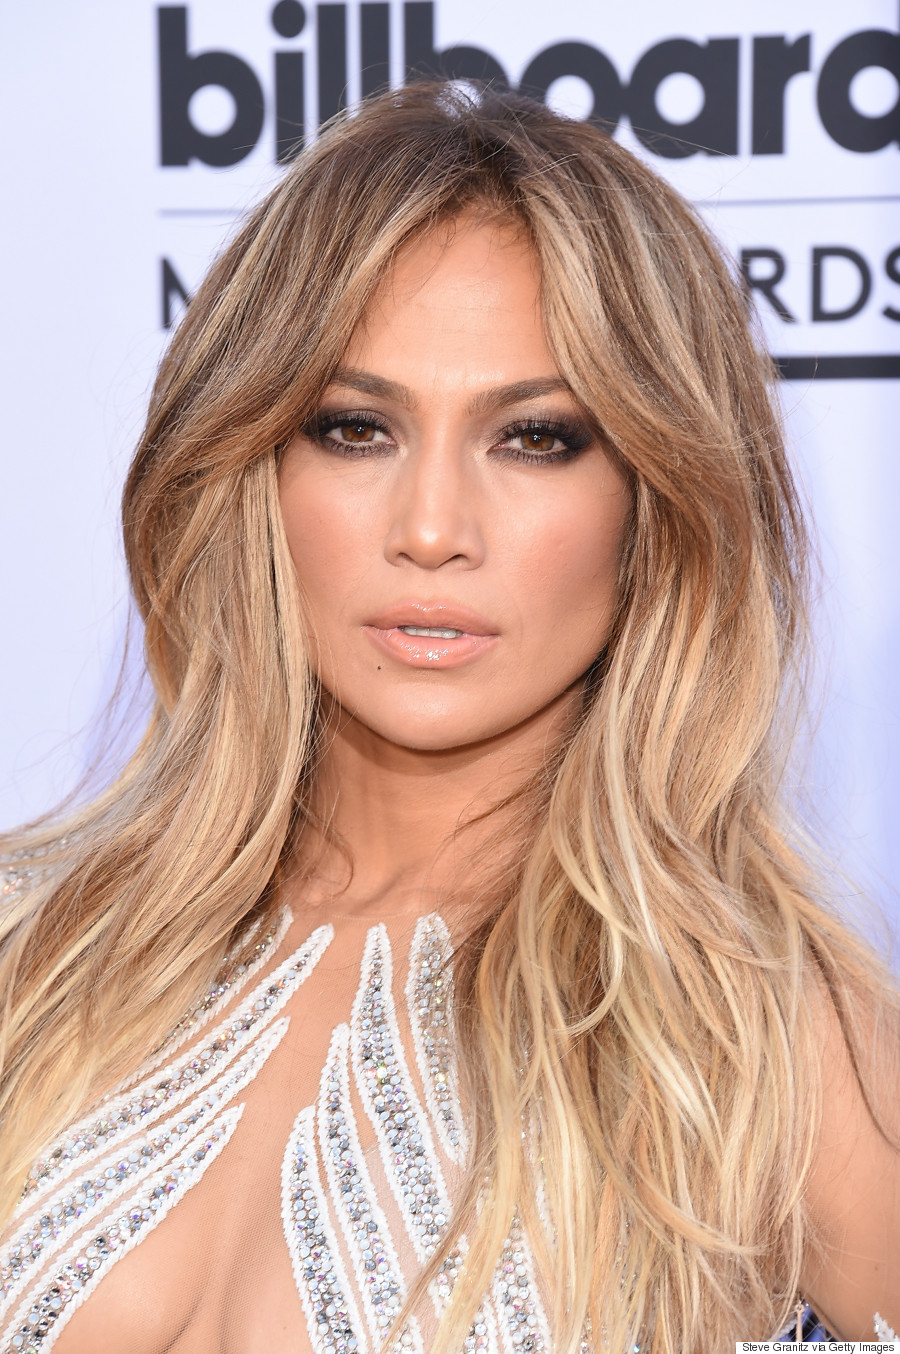 Jennifer Lopez's Billboard Music Awards 2015 Dress Leaves ... Jennifer Lopez